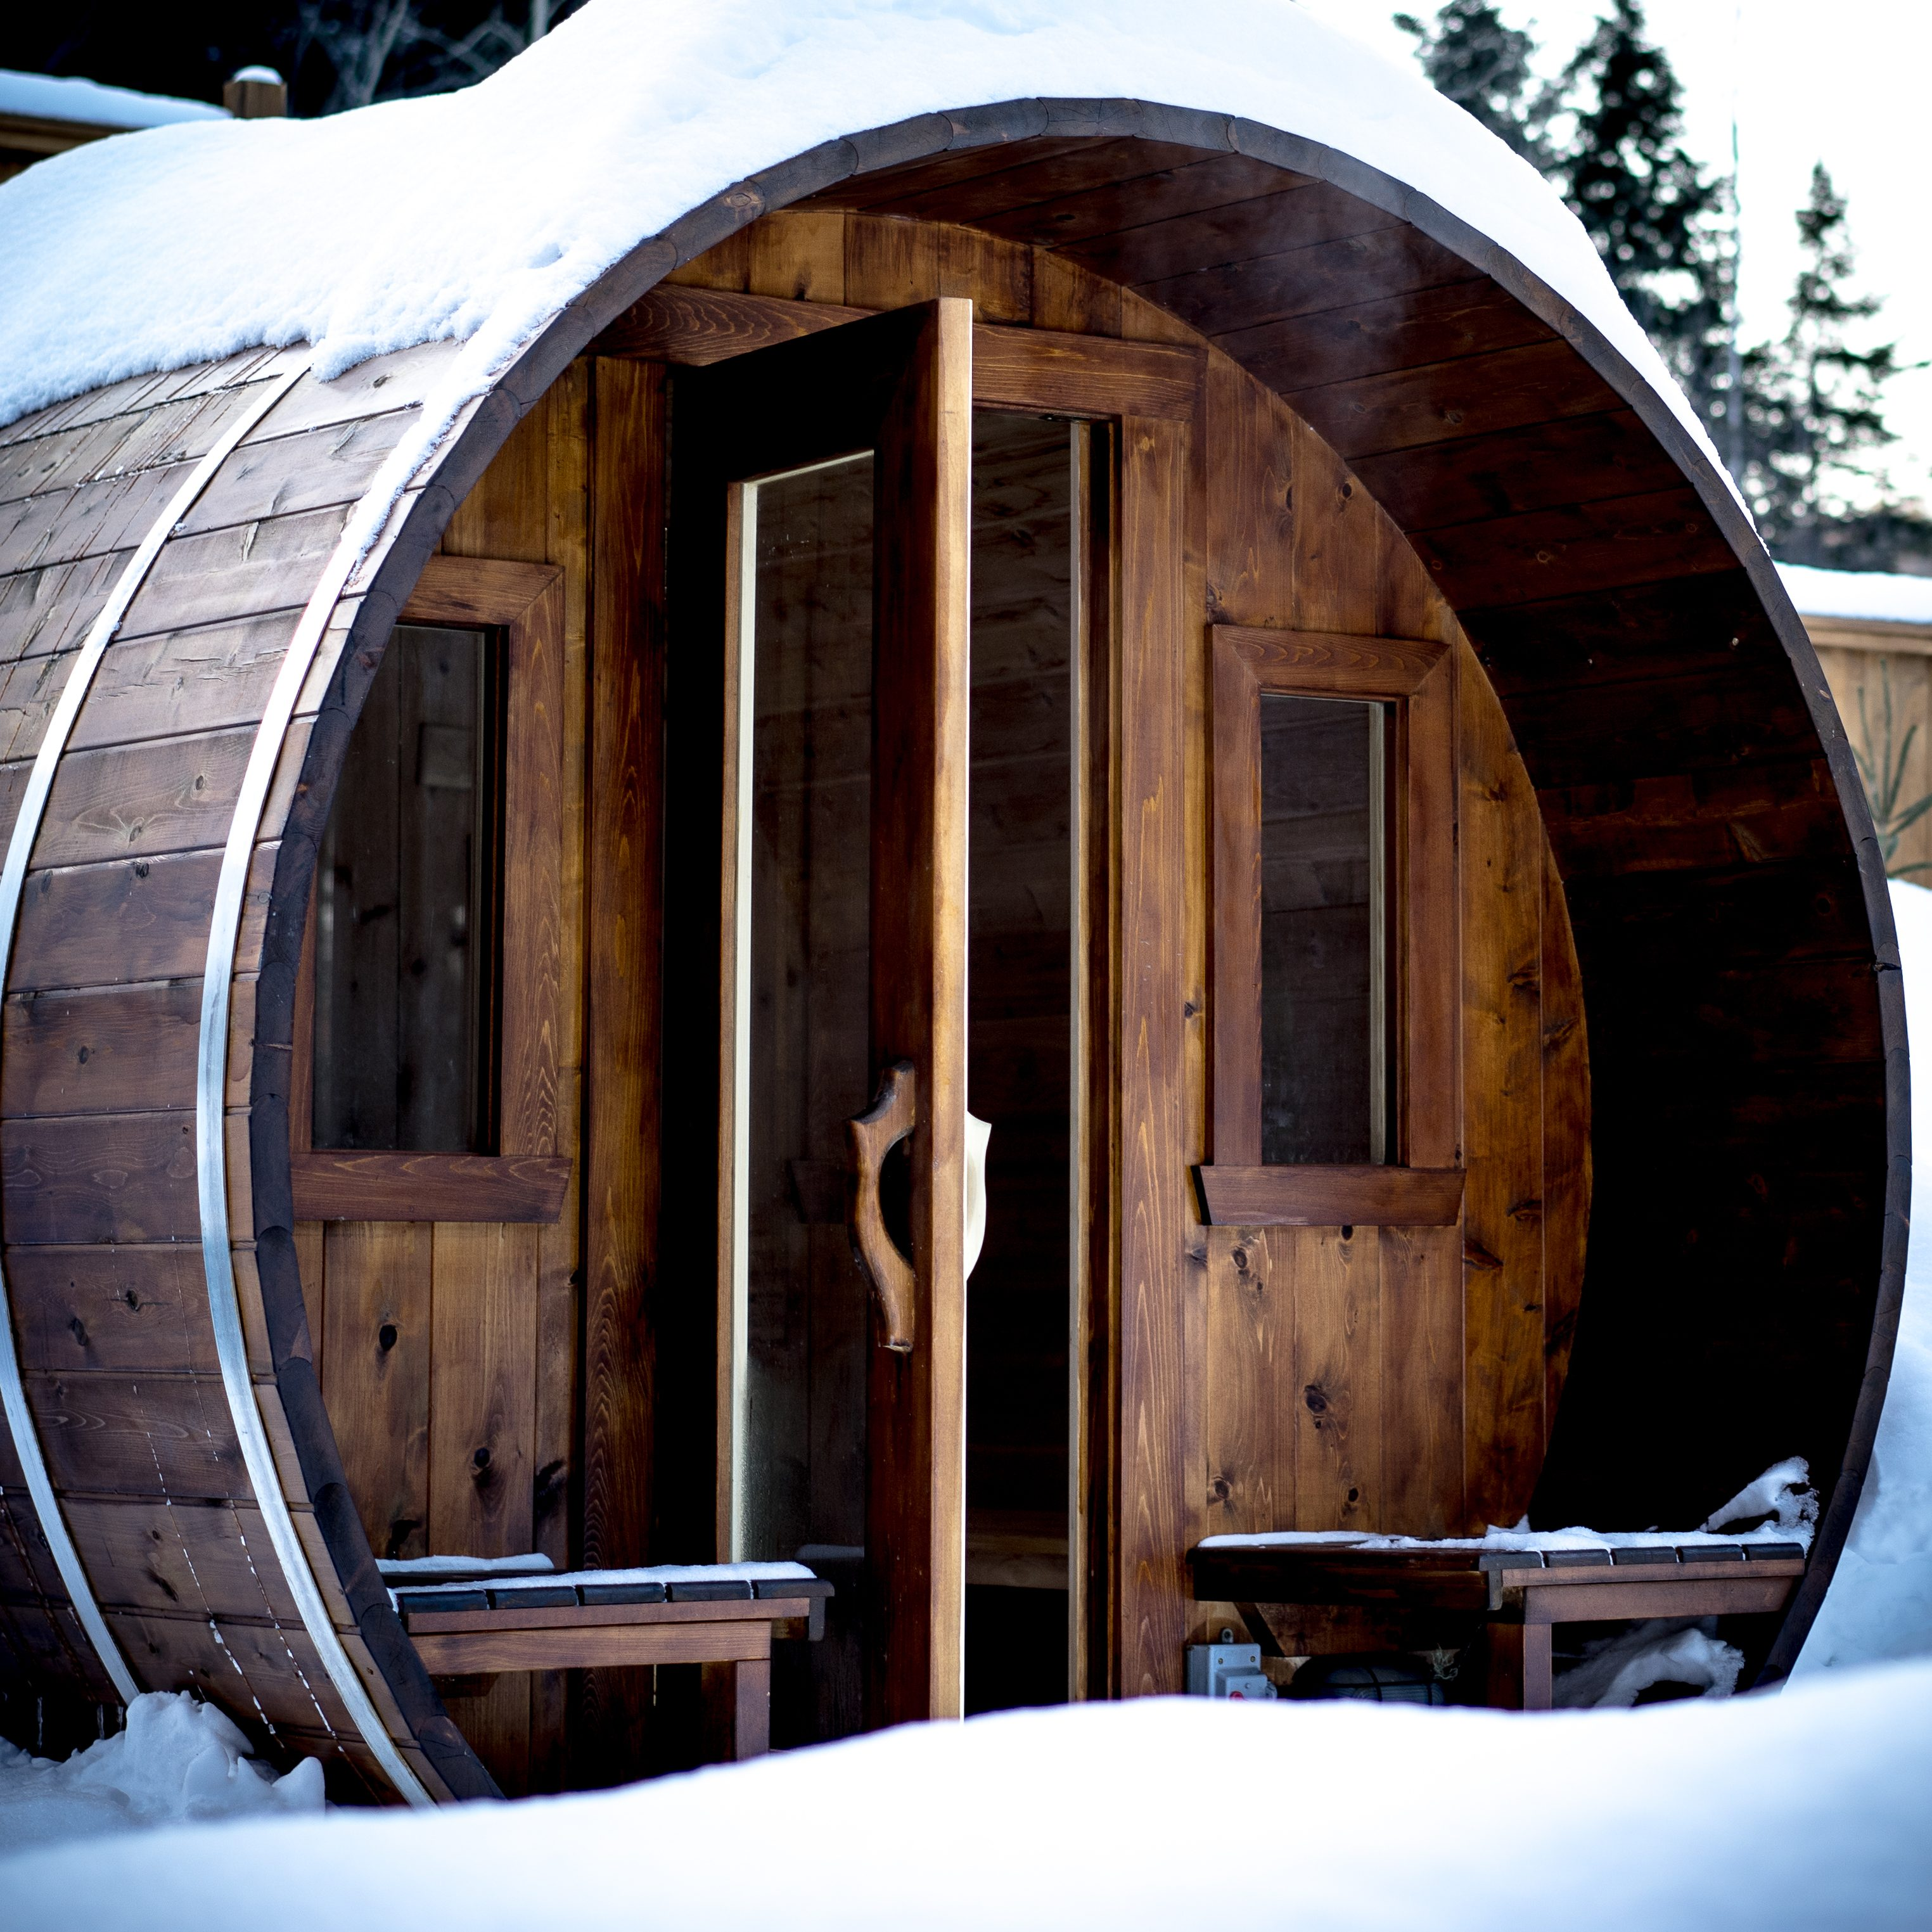 wooden outdoor sauna during a cold winter day with steam going out of the open door